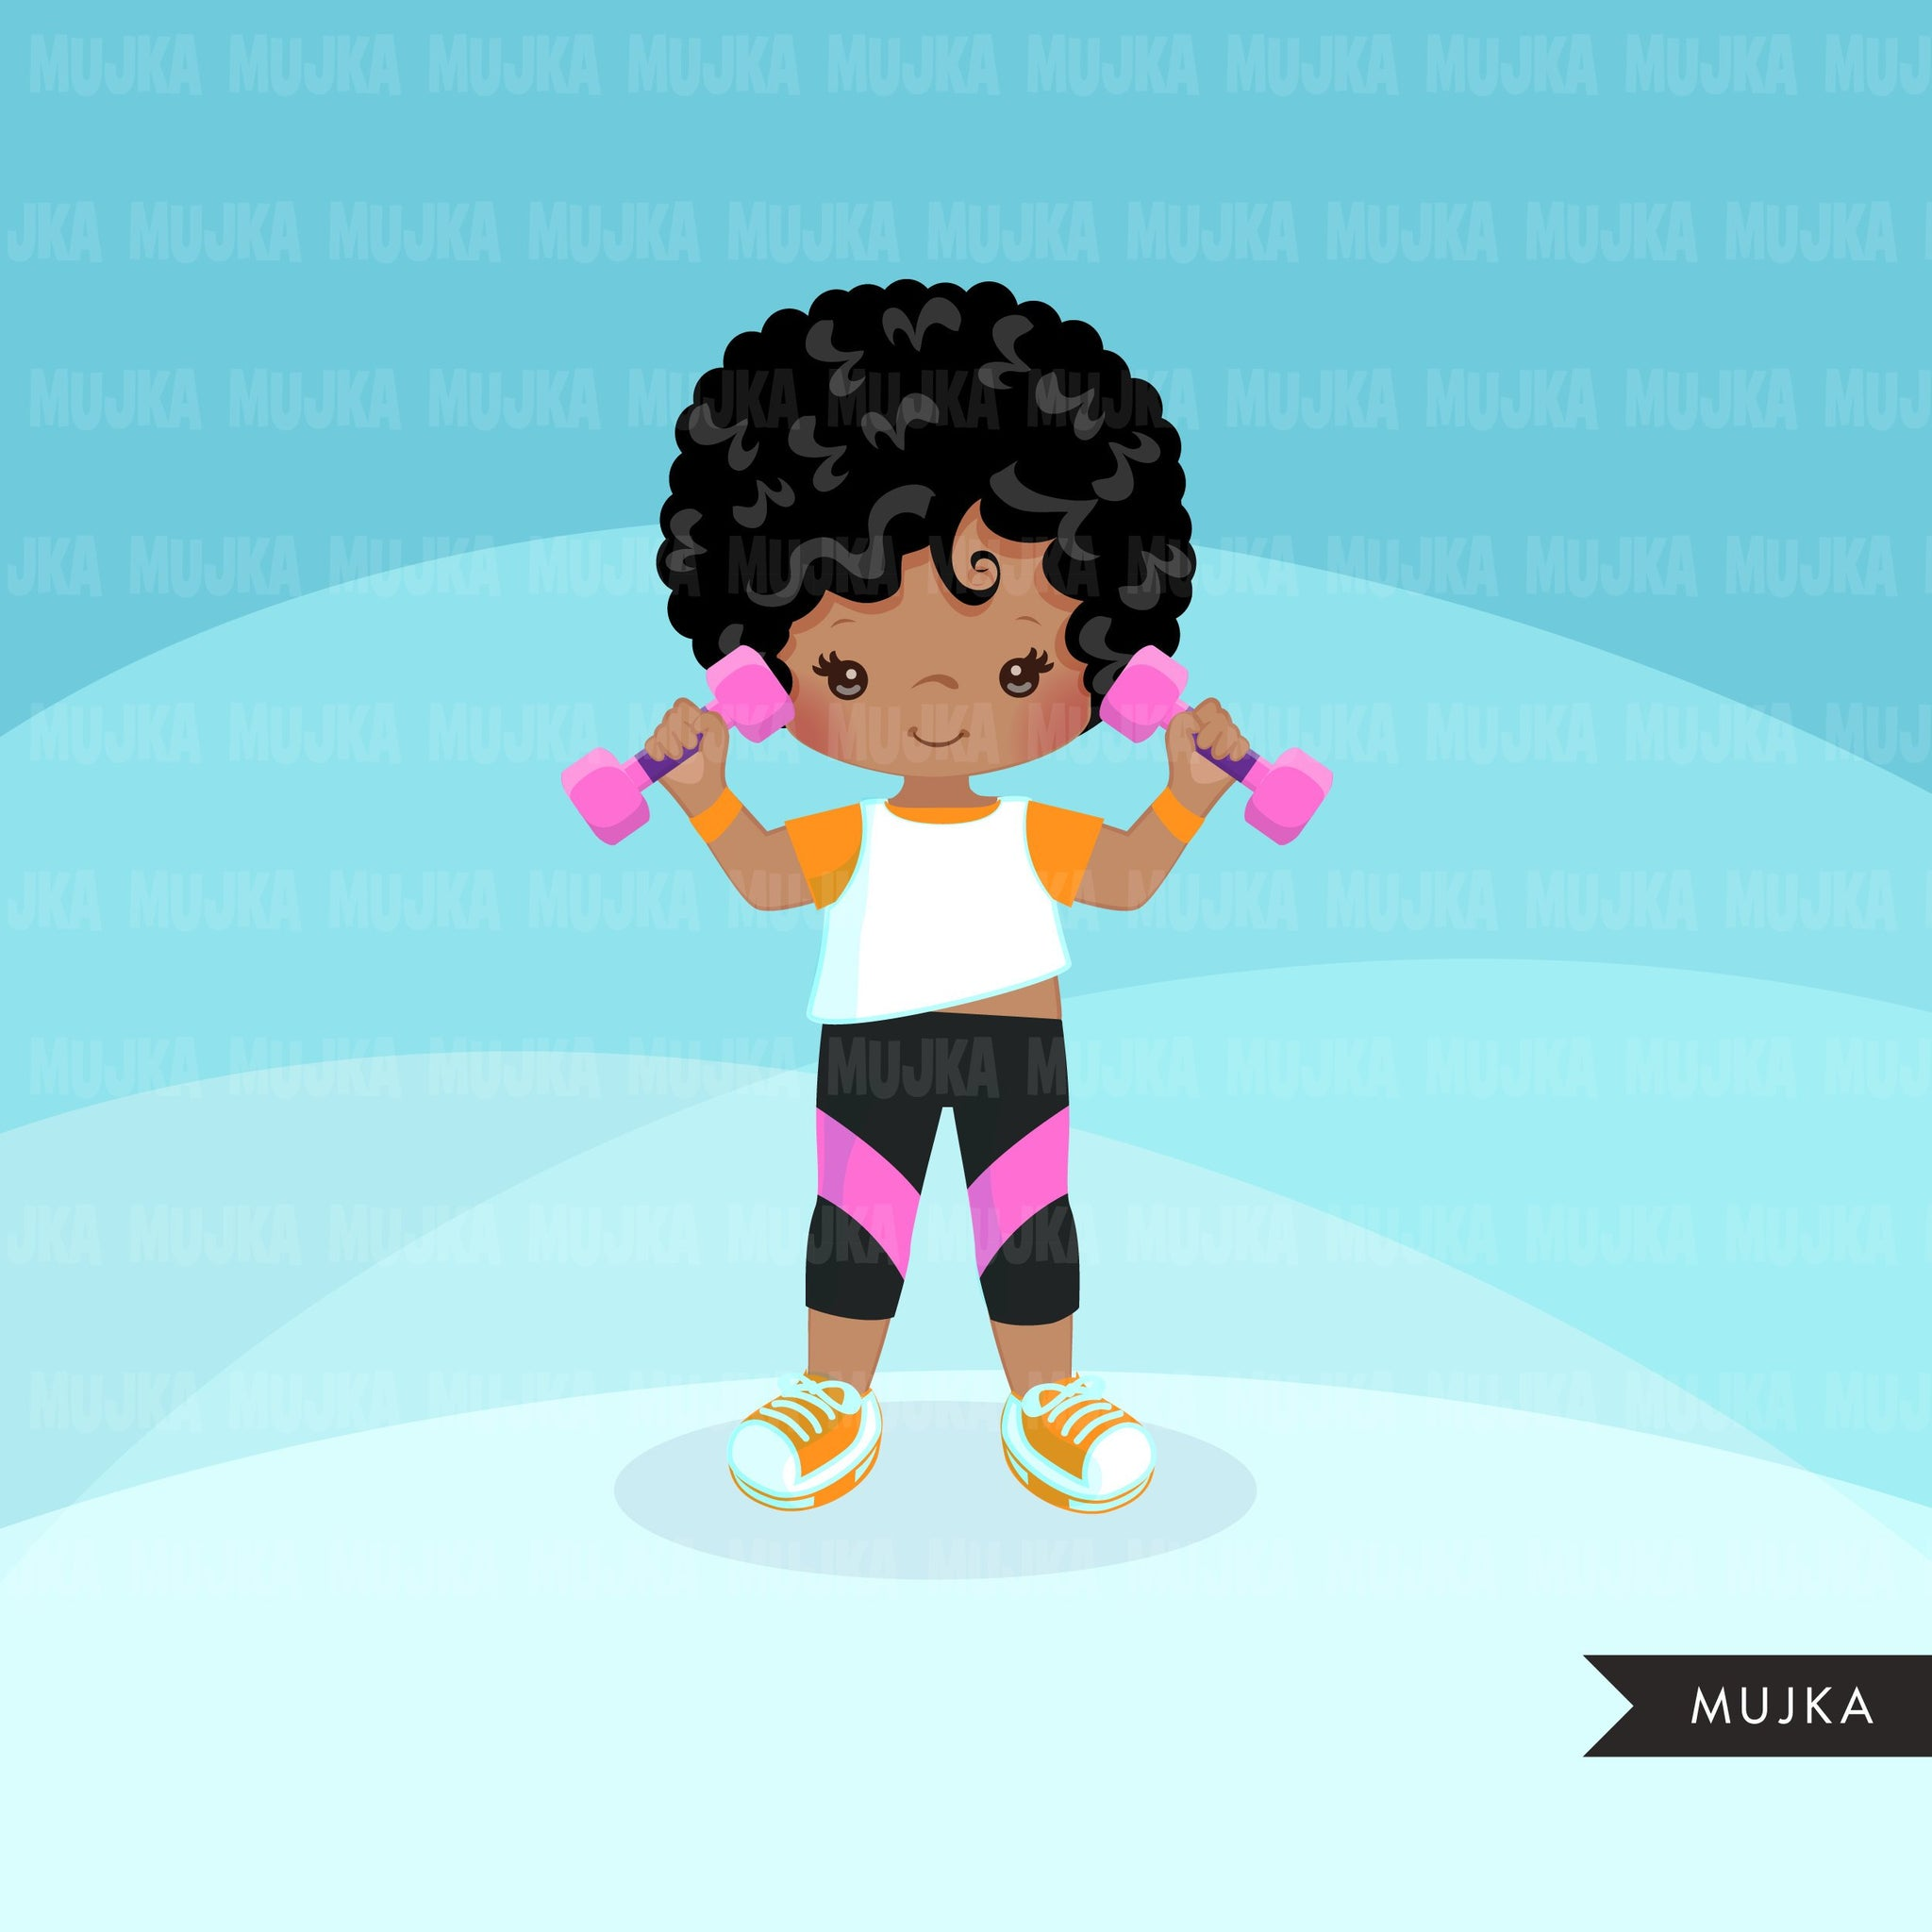 Fitness clipart Healthy lifestyle, yoga, workout, gym graphics, commercial use clip art, weight lifting black girls